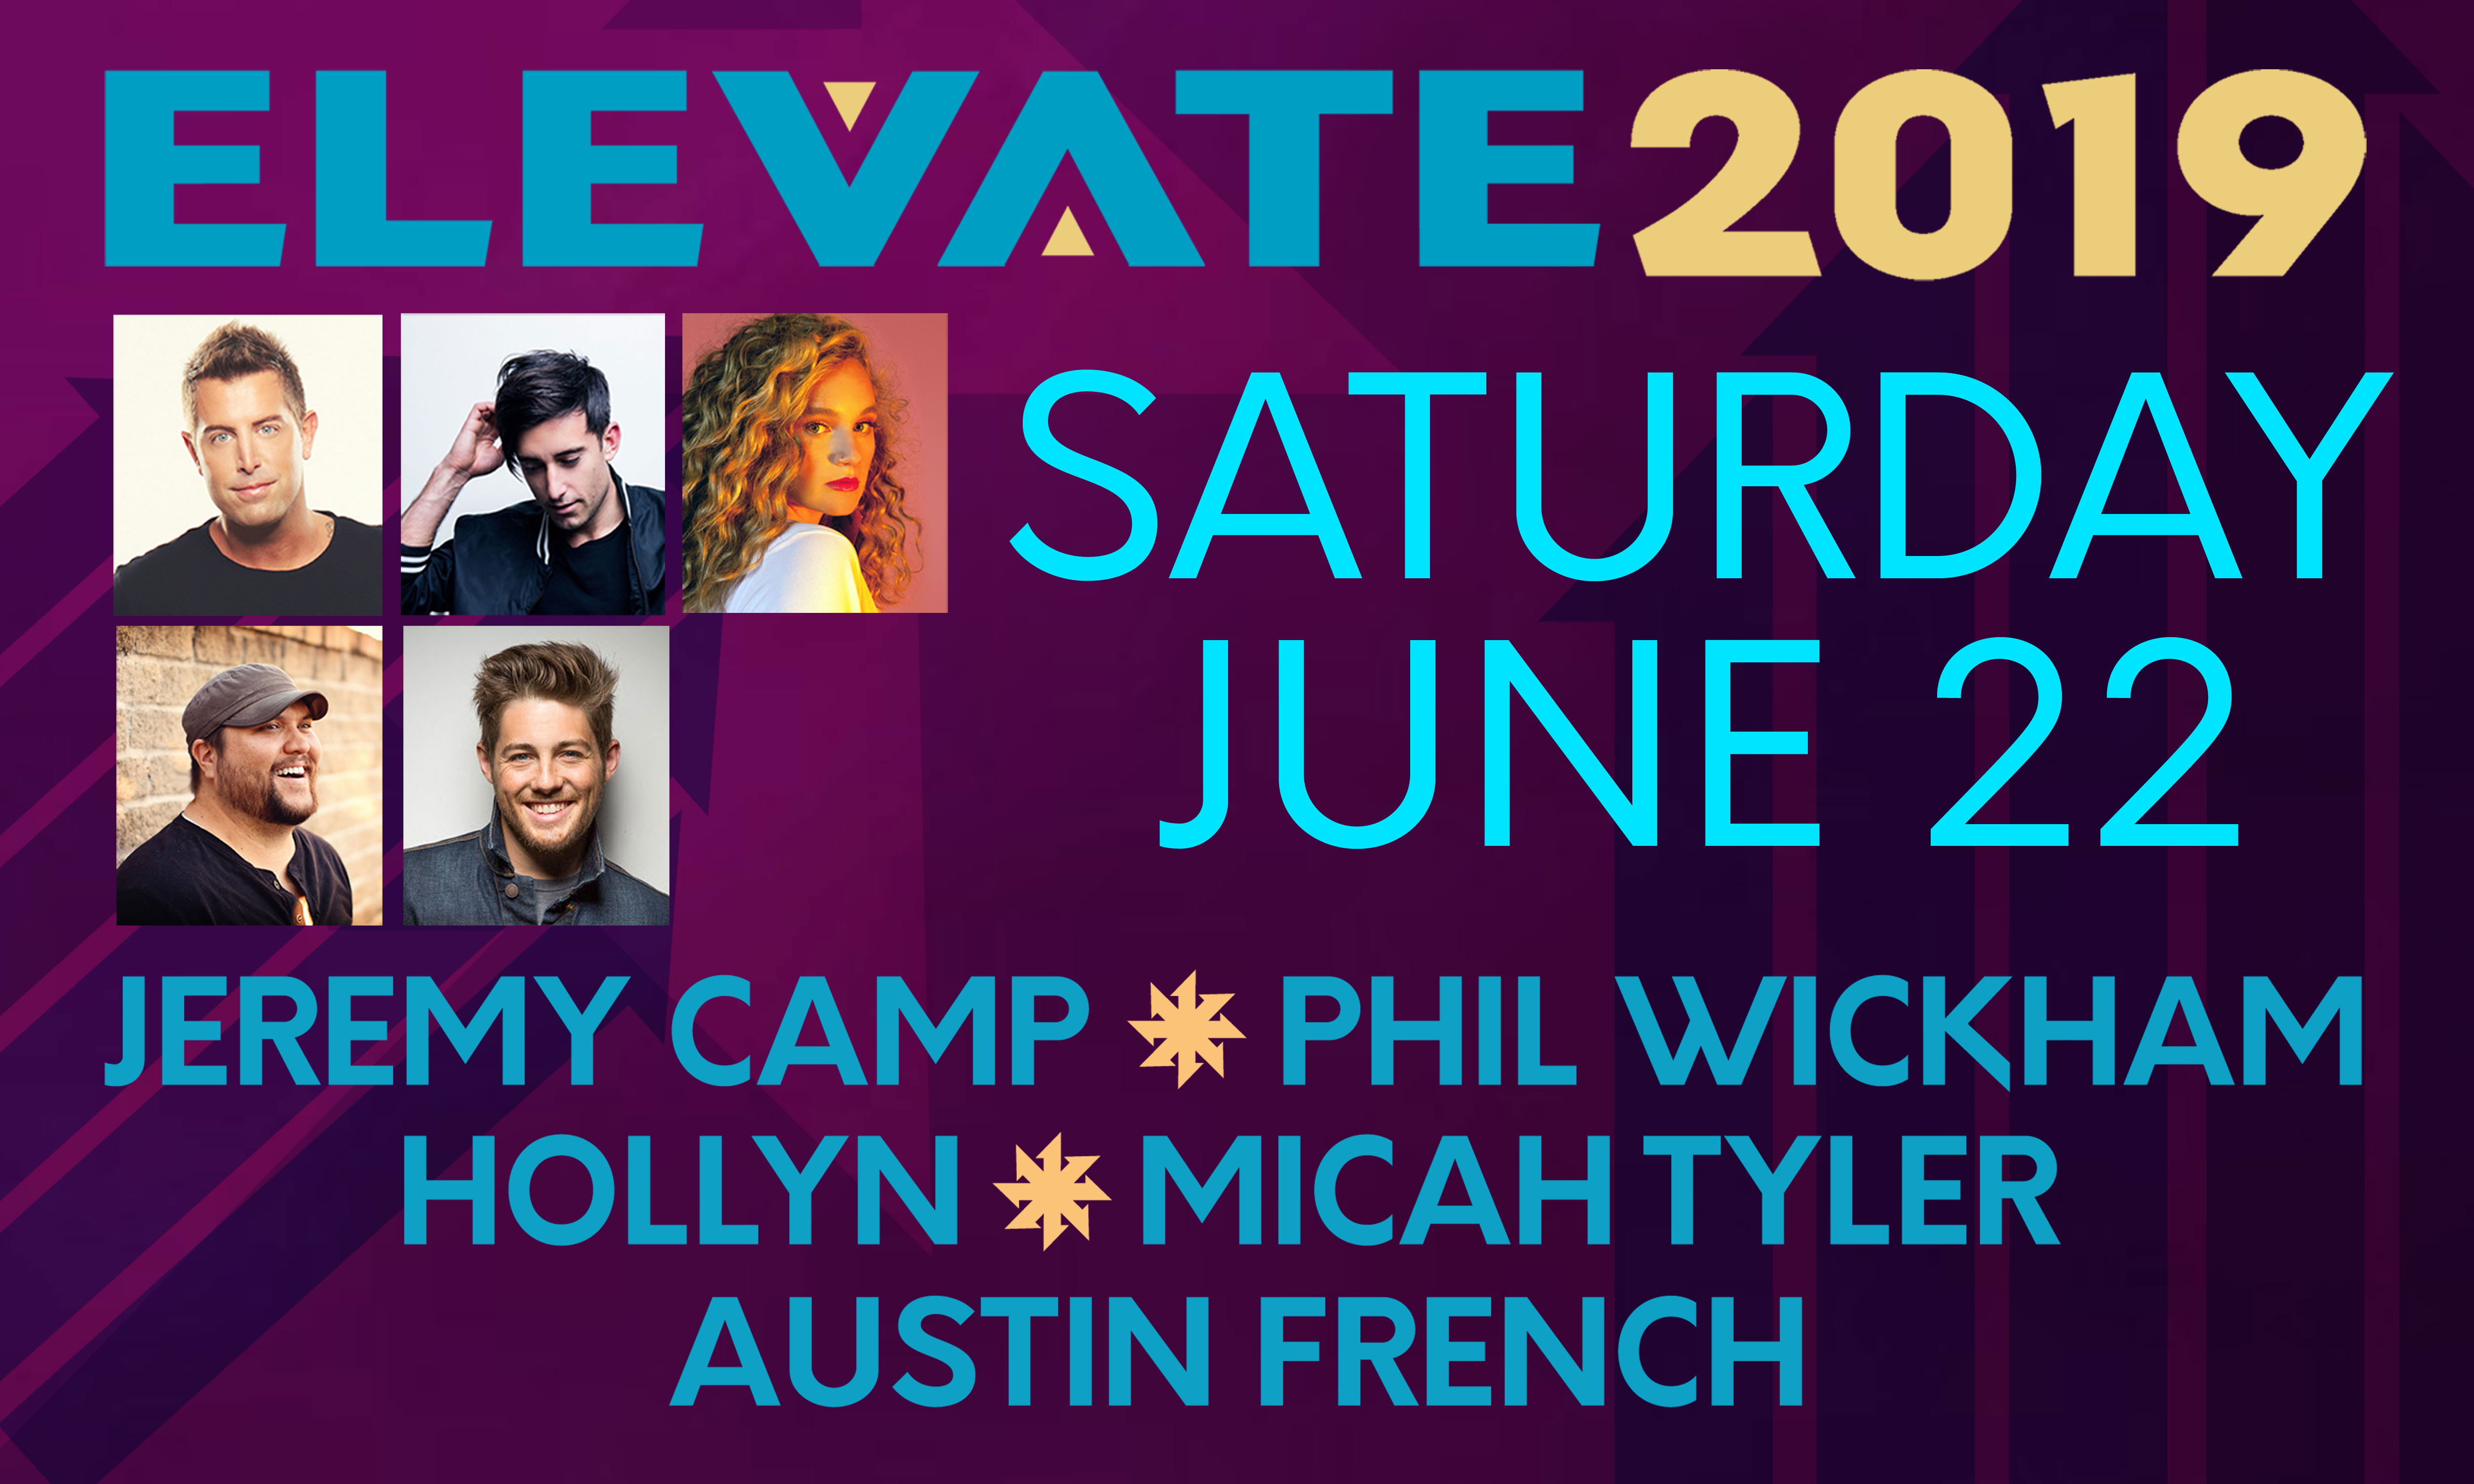 Elevate FB SATURDAY